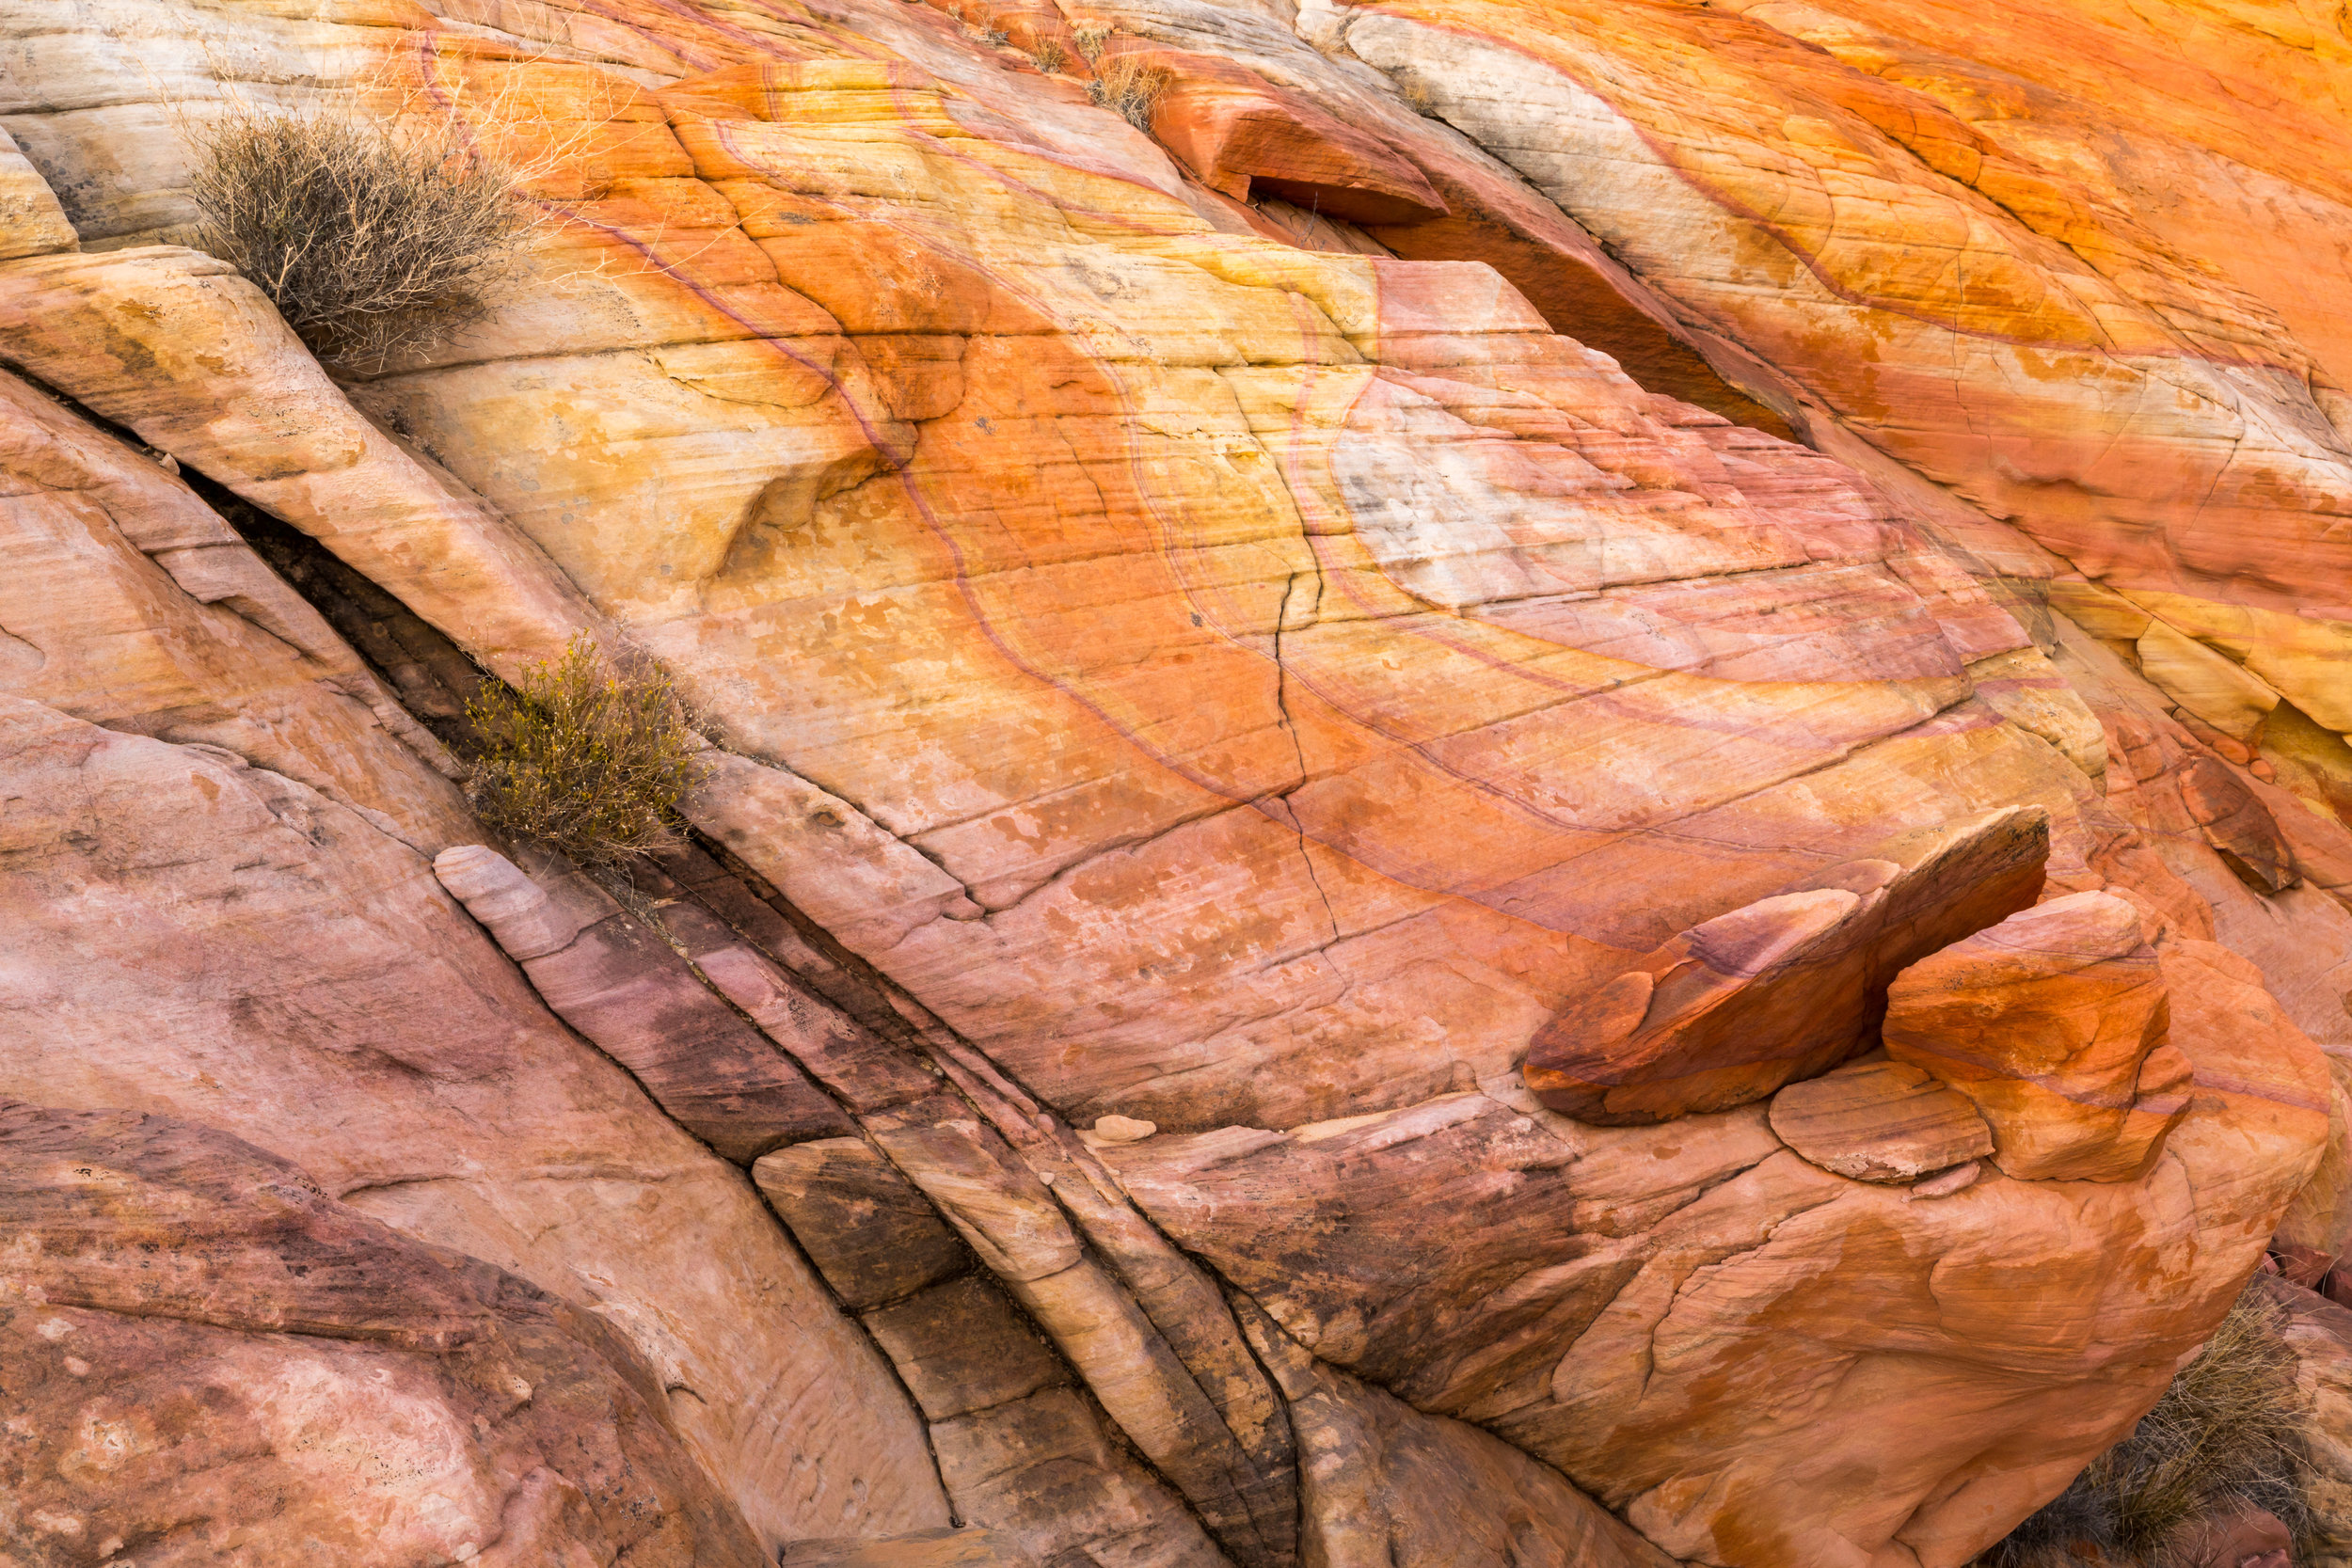 Valley of Fire, Image # 0695